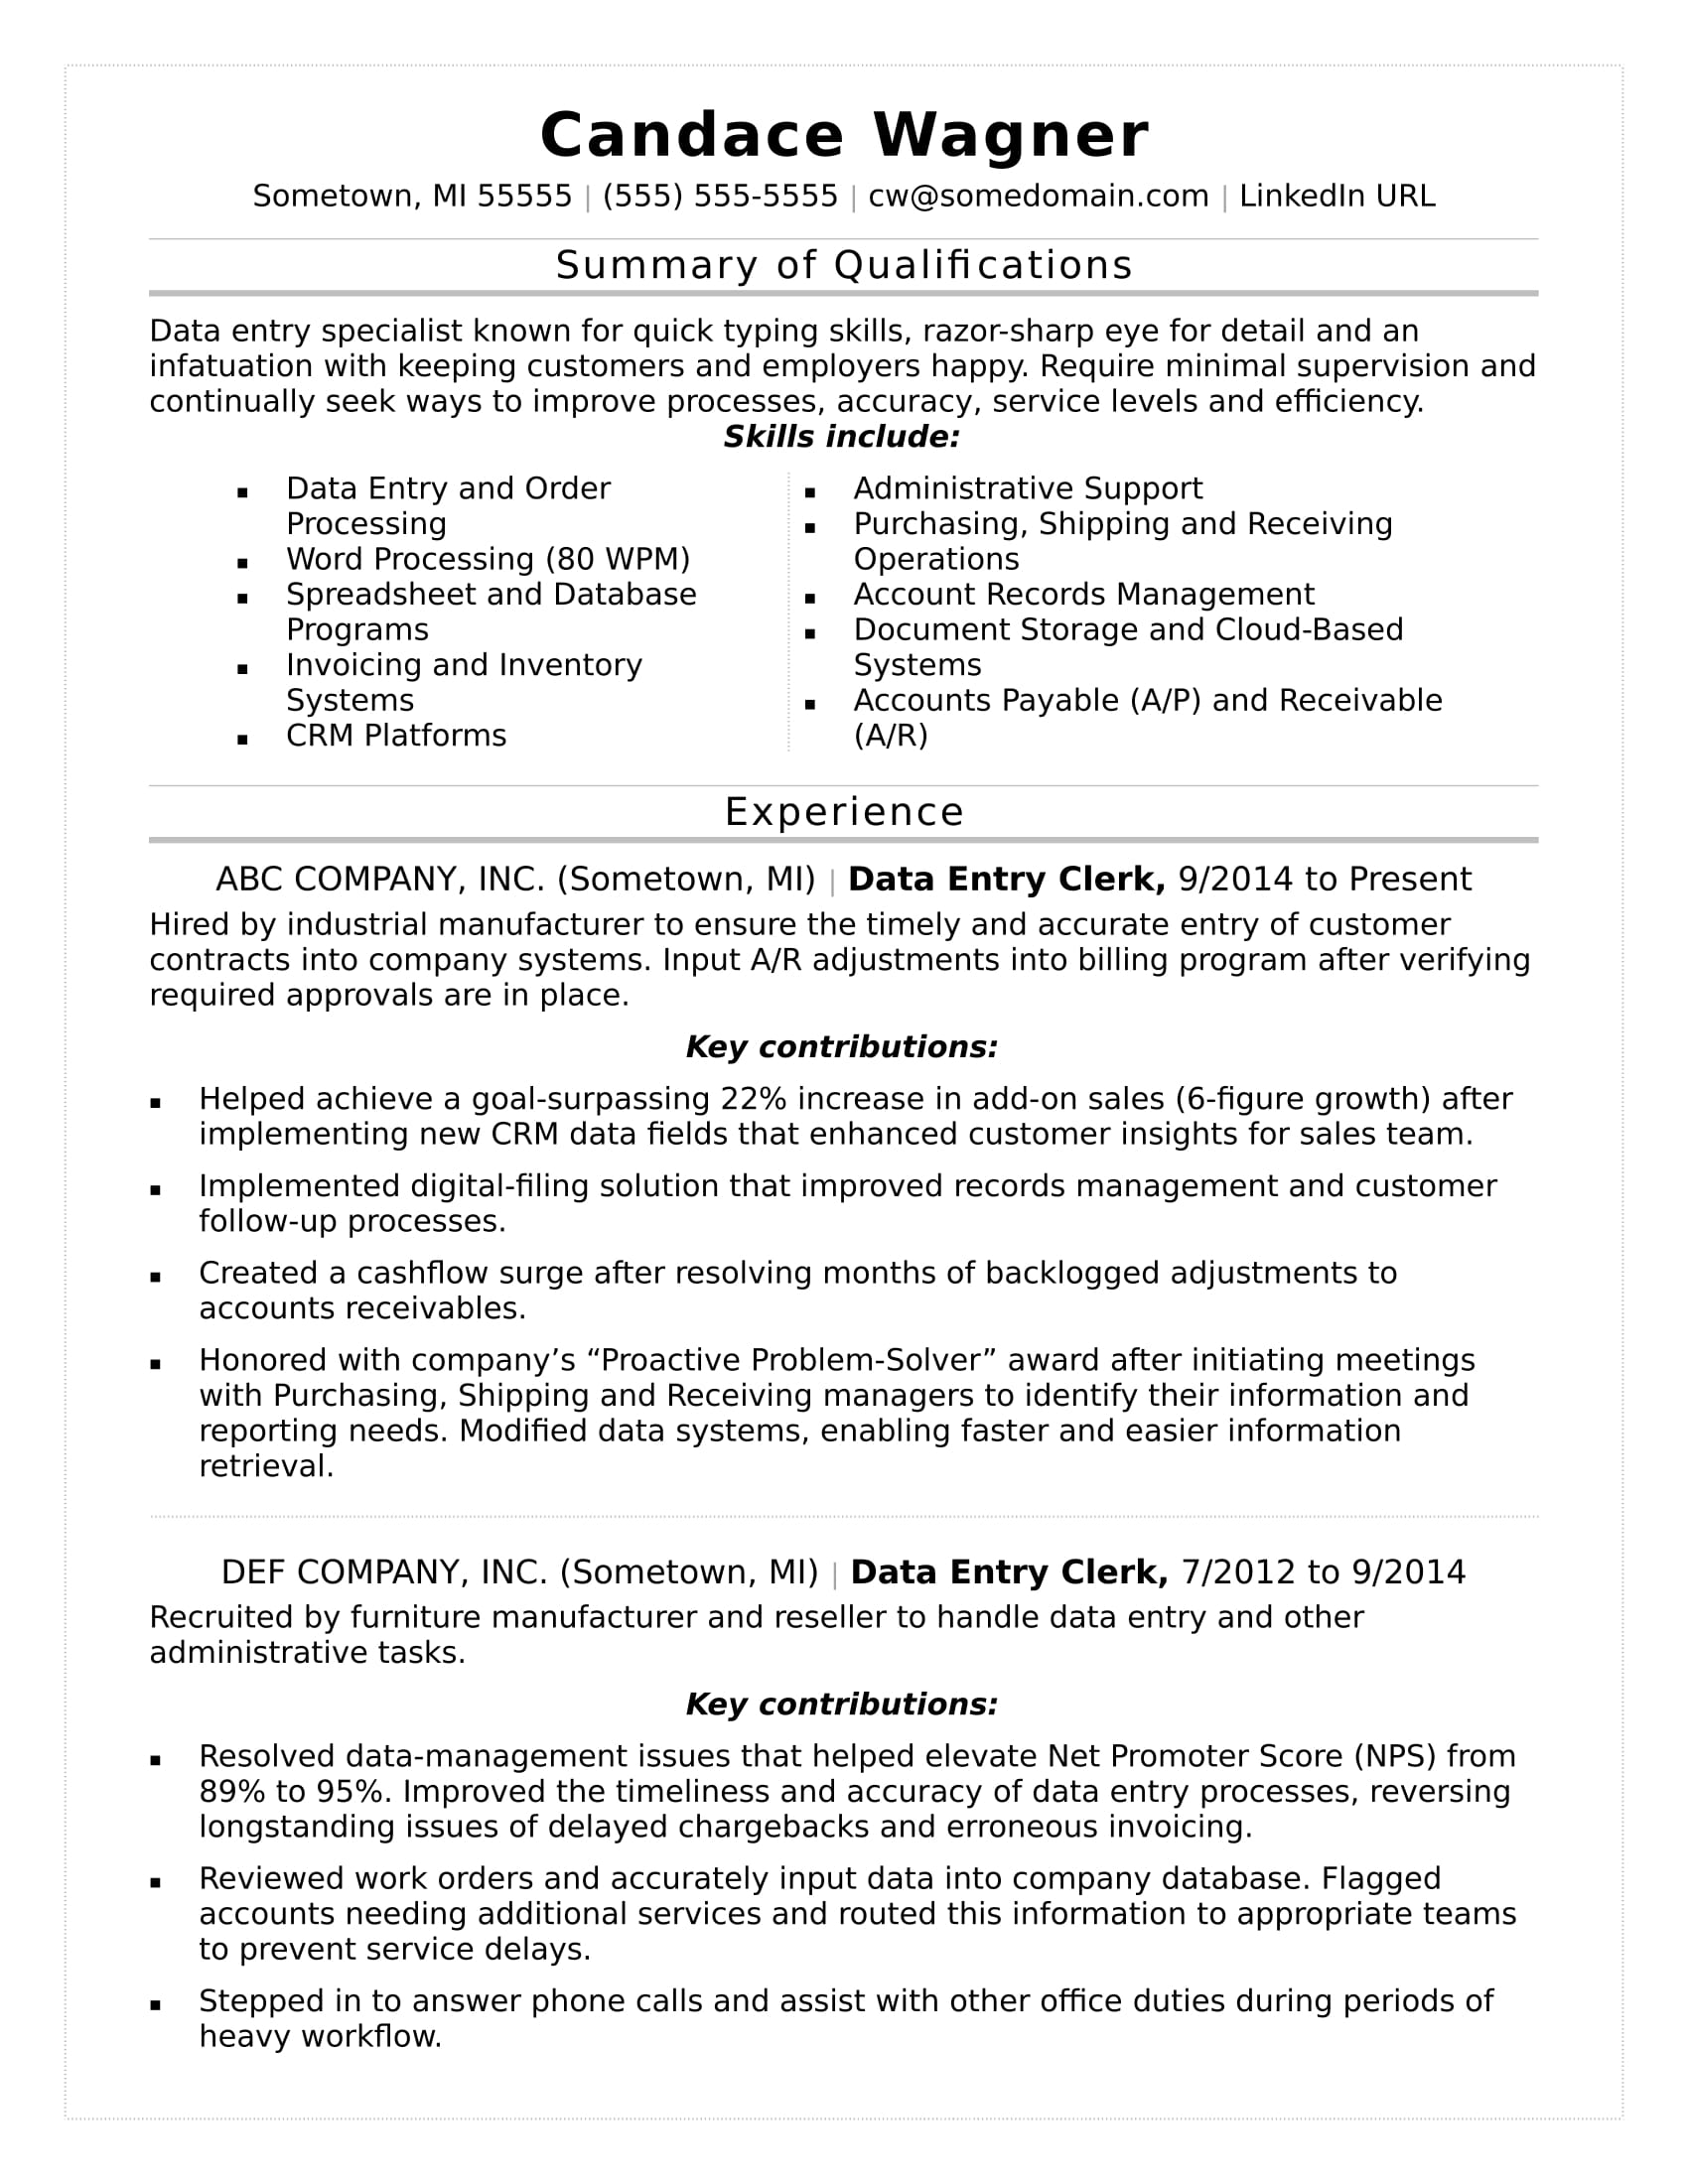 data entry resume sample - Data Entry Resume Sample Skills